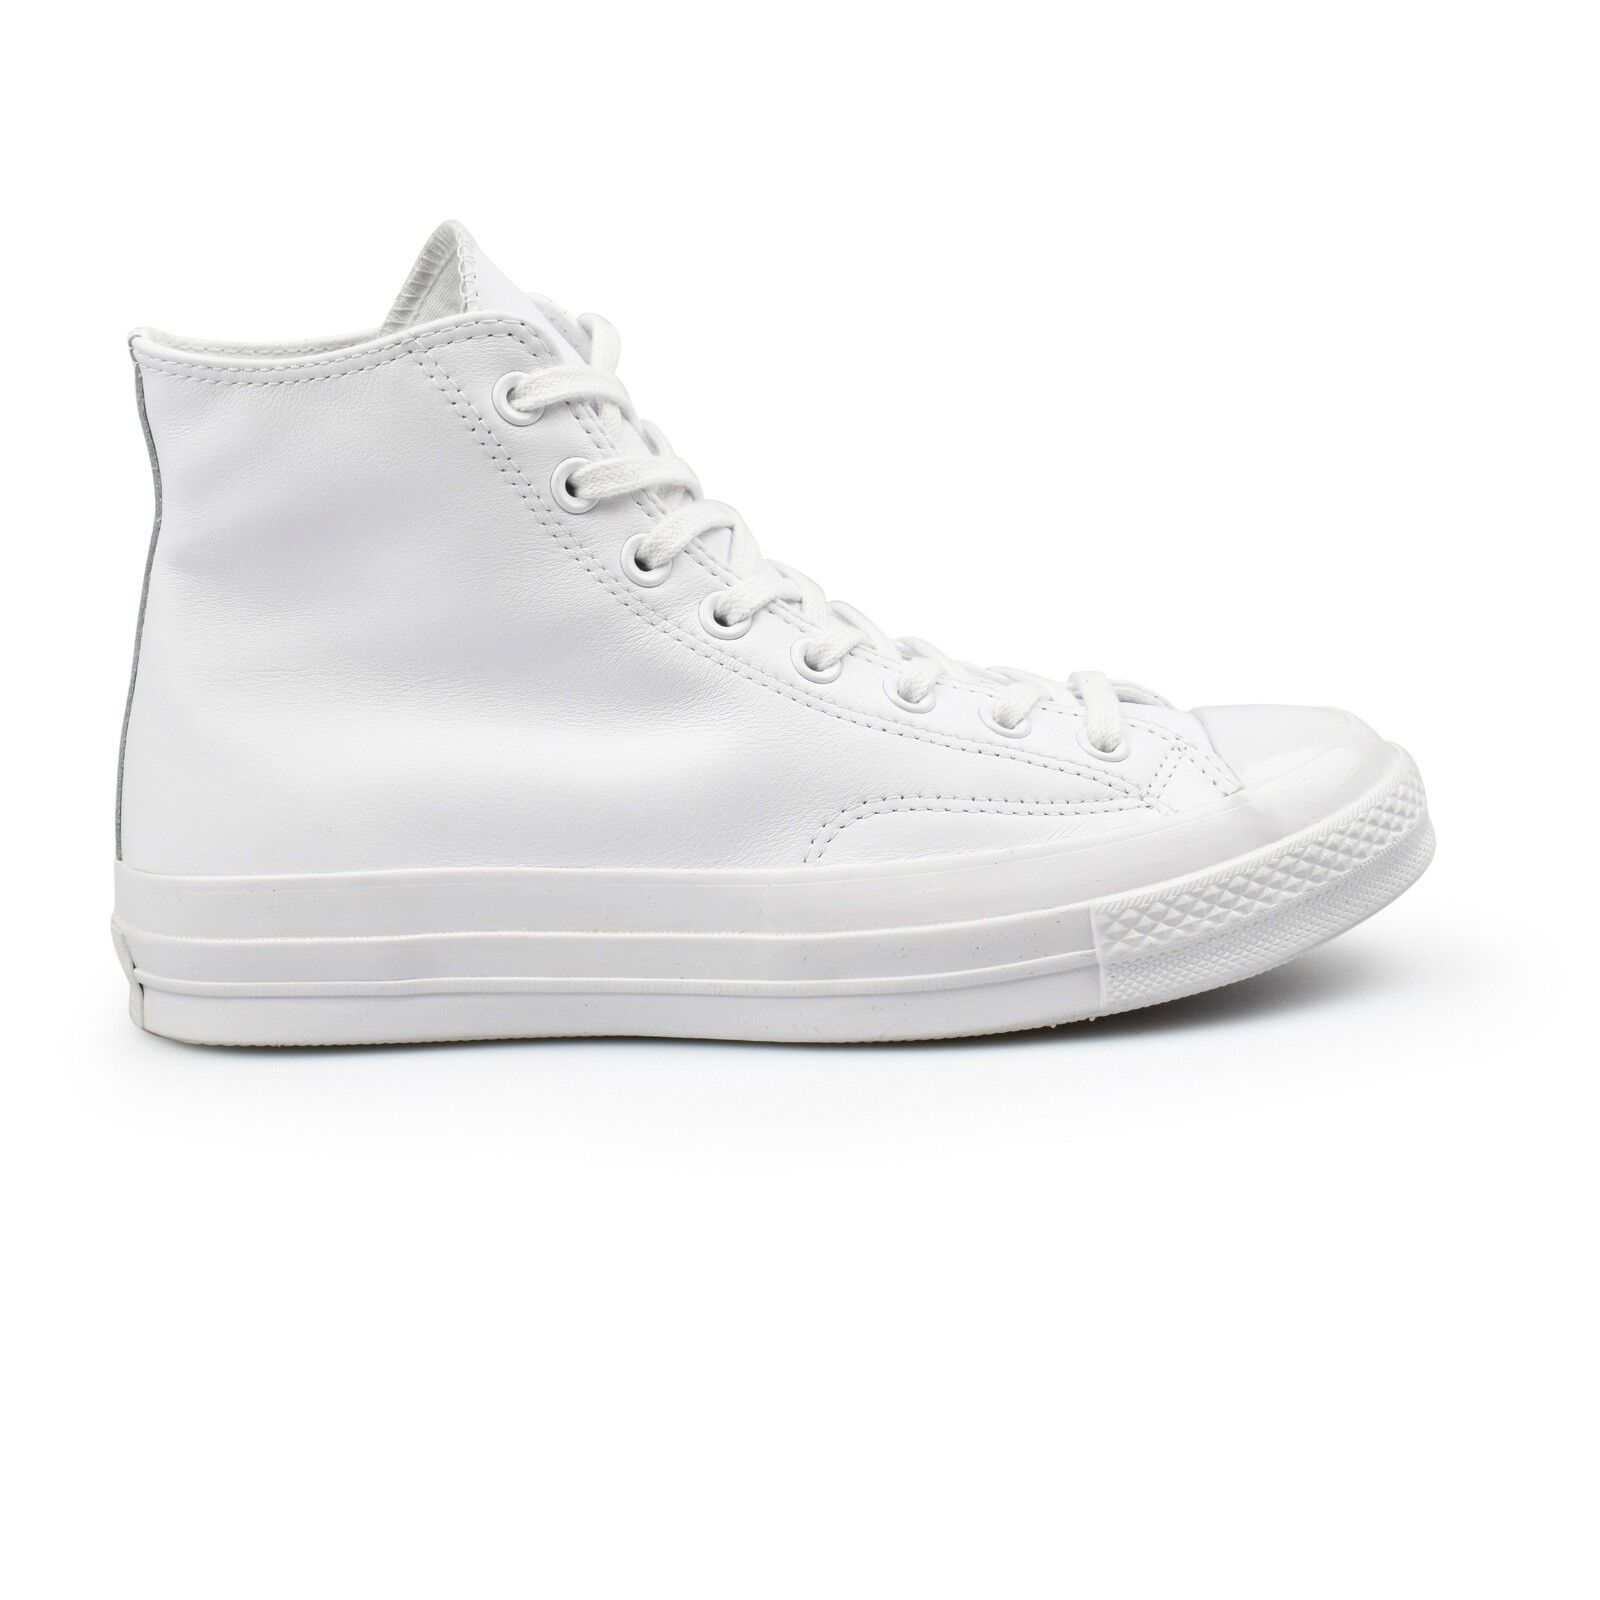 Converse Chuck Taylor All Star 70's Hi Mono blanc Leather hommes Trainers 155453C